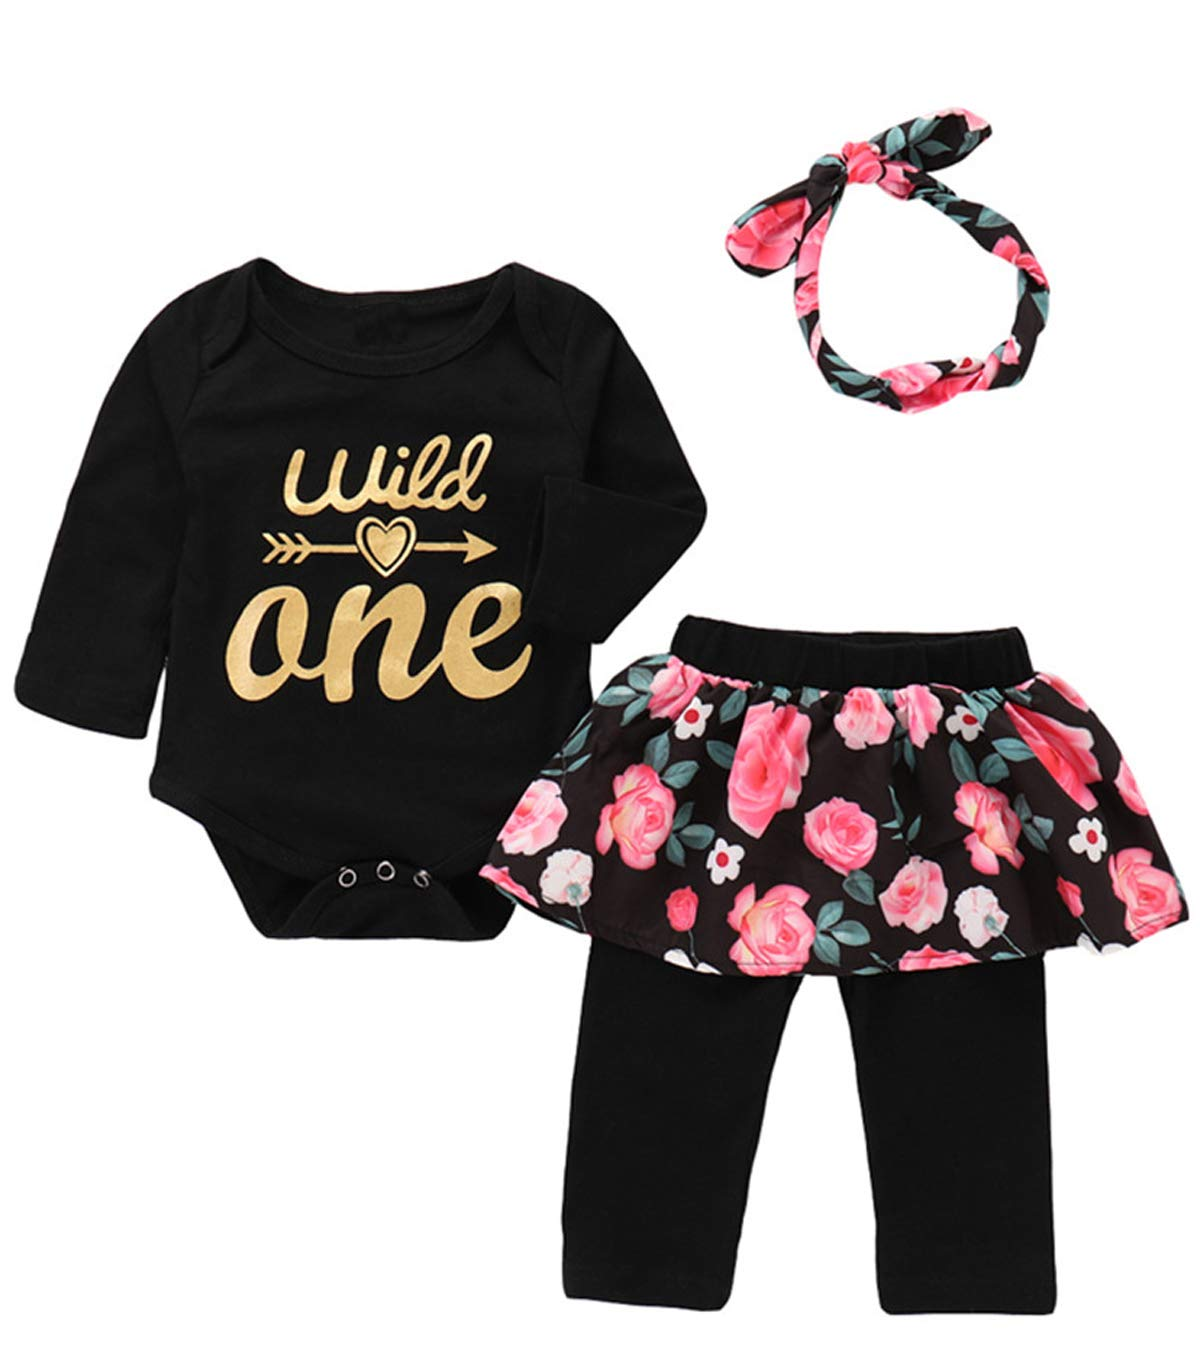 3Pcs Outfit Set Baby Girls Wild One Floral Pant Clothing Set (Black02 Wild One, 6-12 Months)